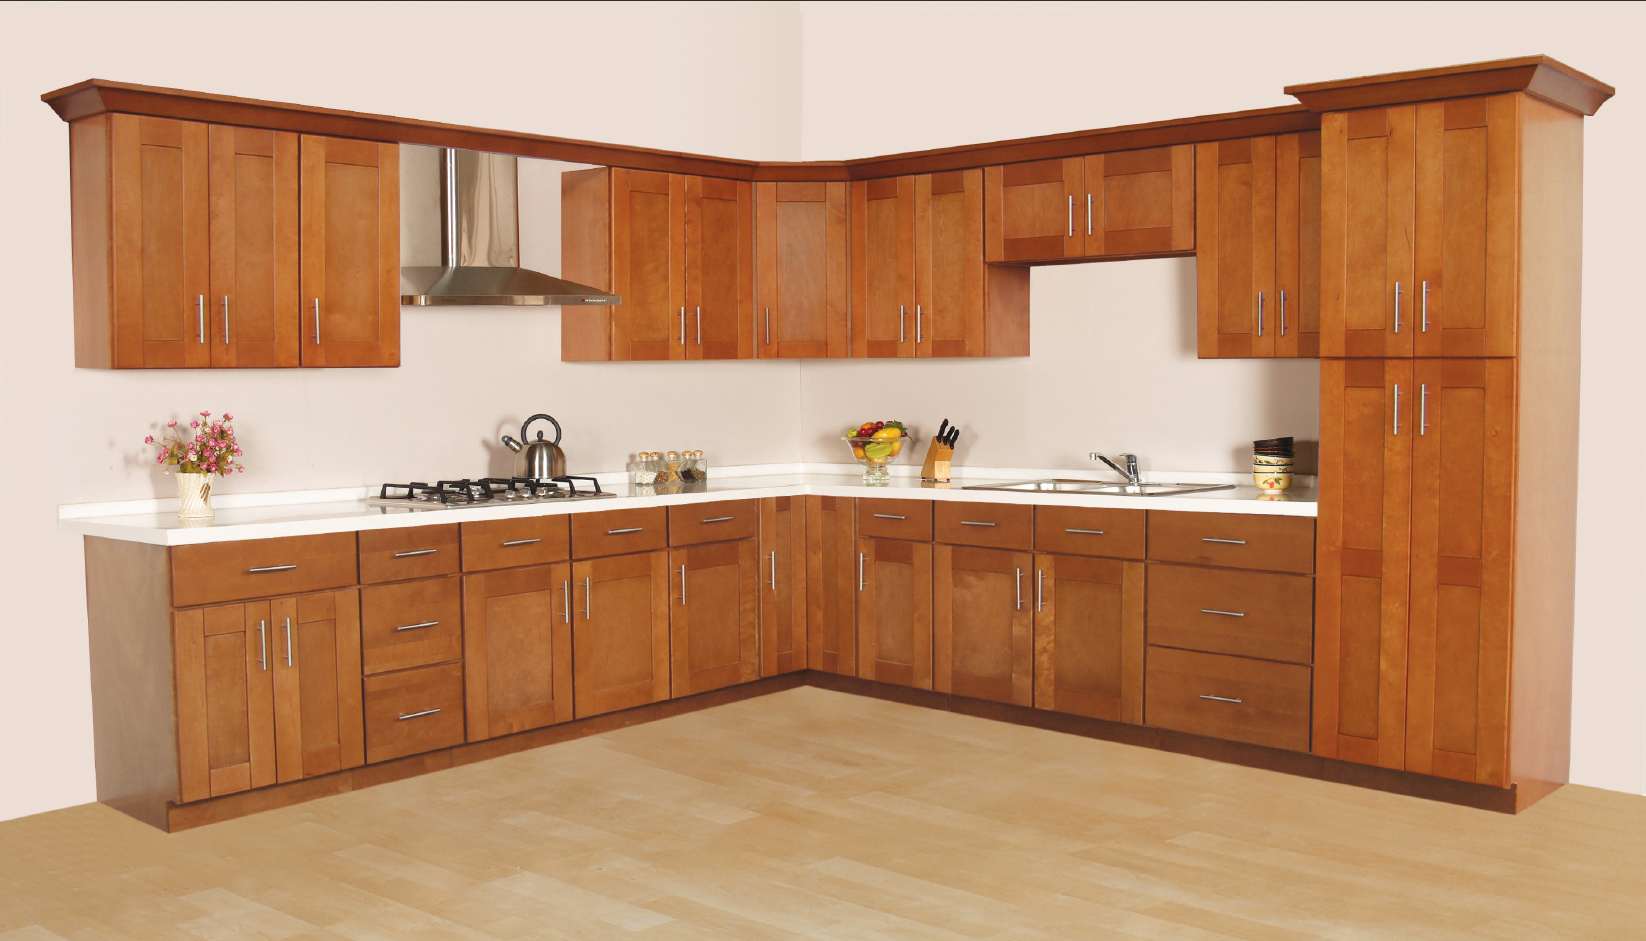 Bar pulls for kitchen cabinets Photo - 4